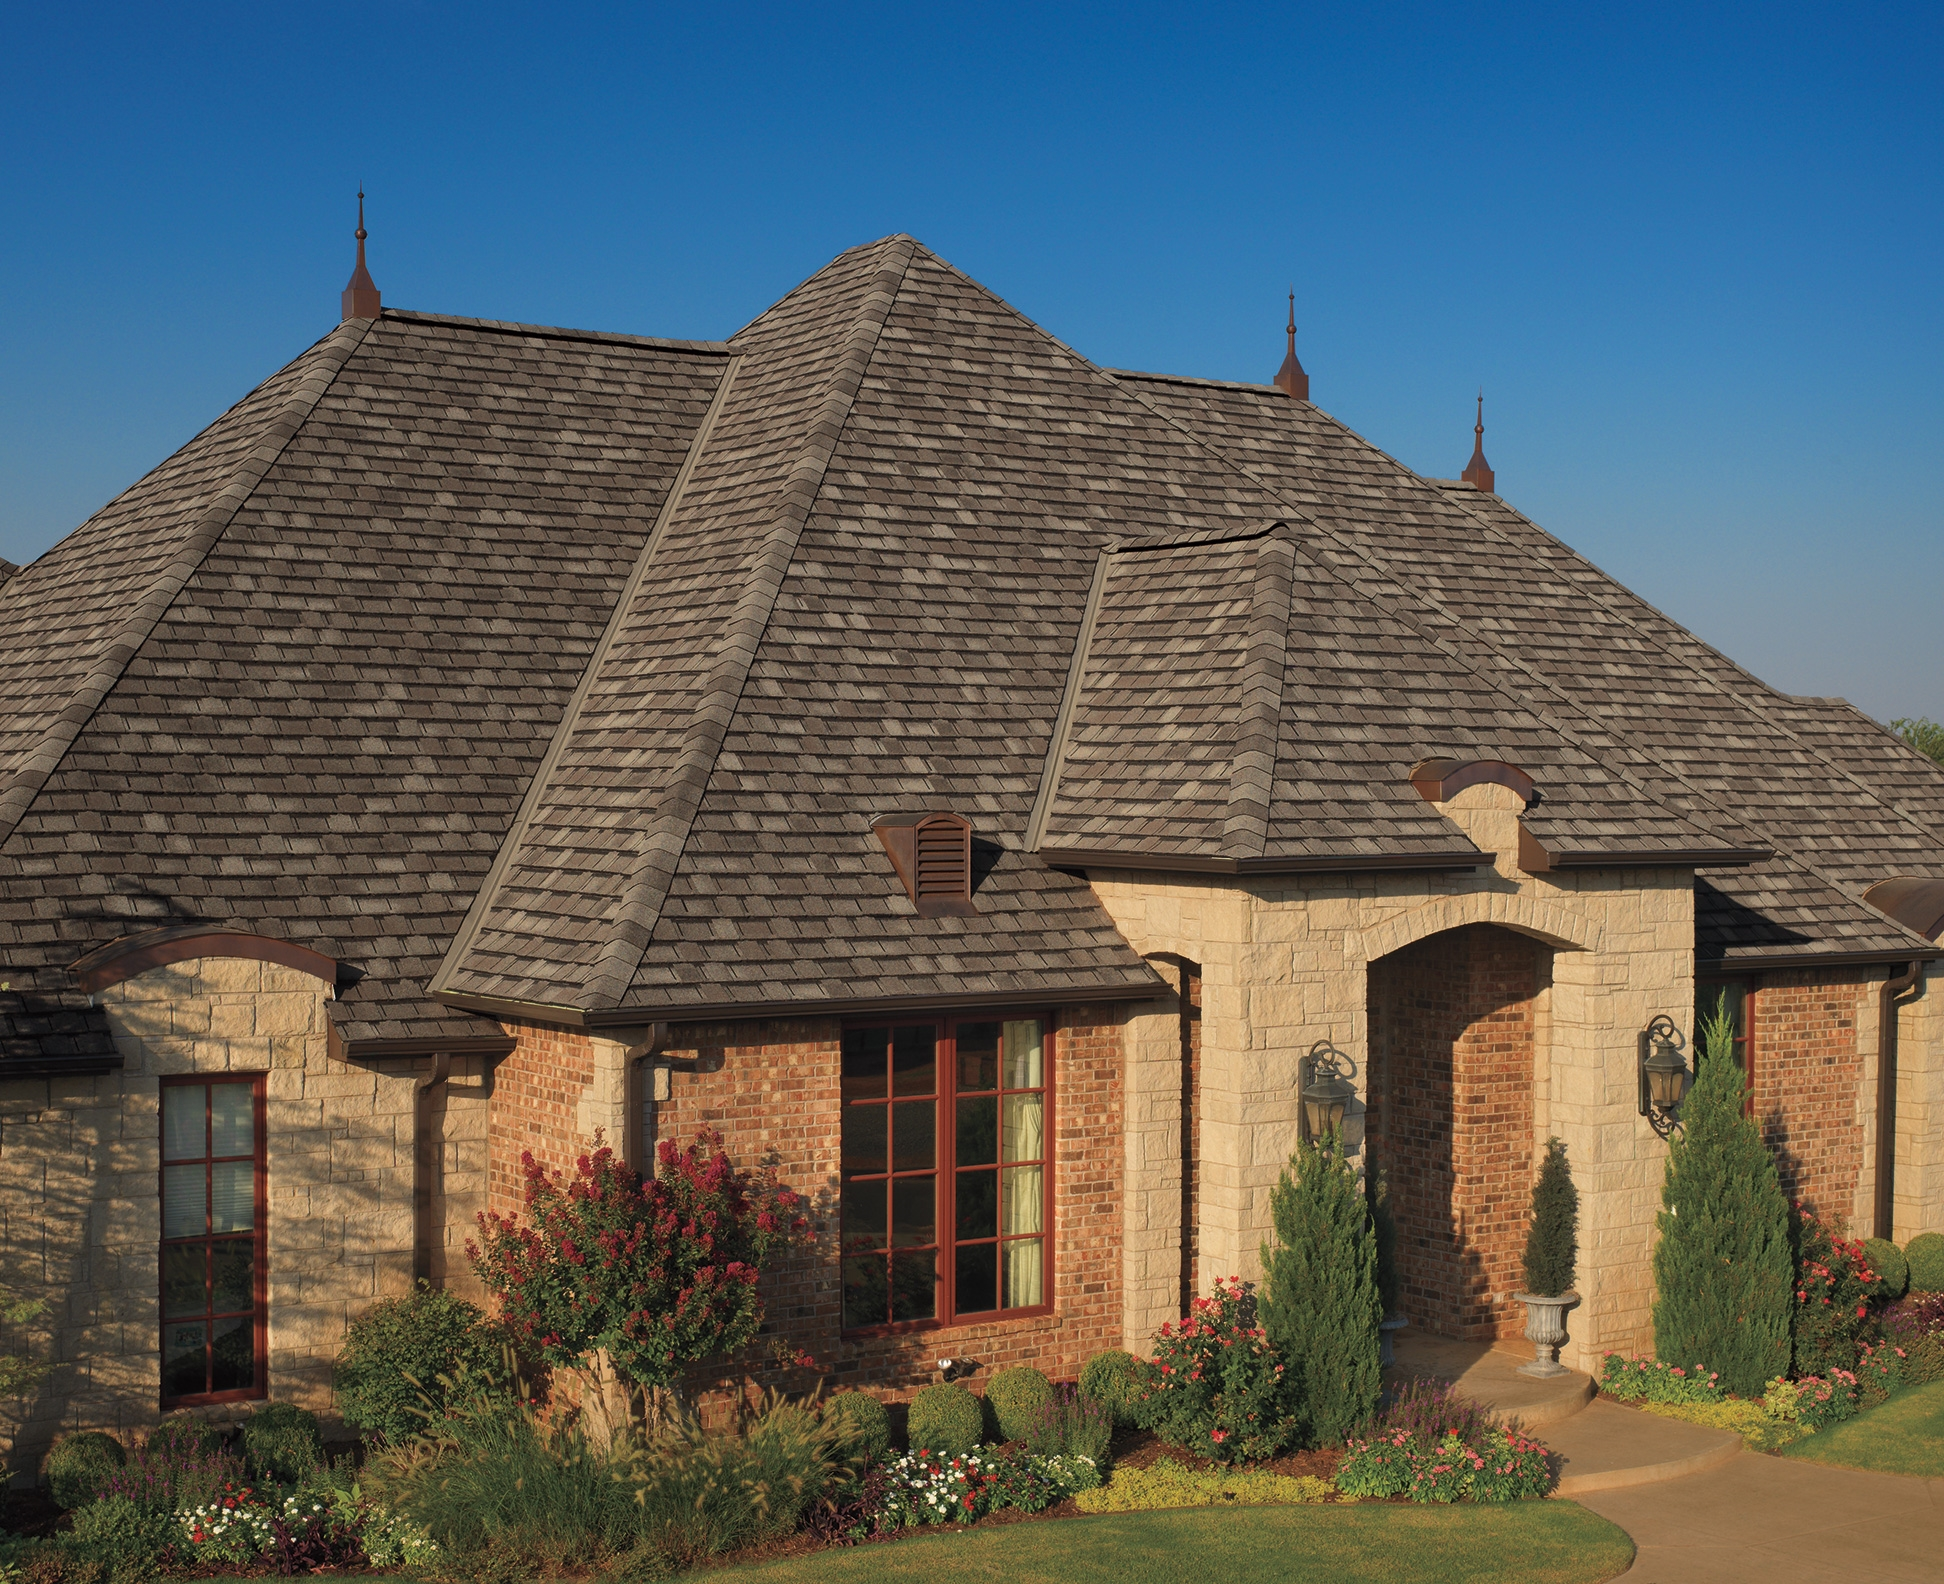 Camelot Premium Murray S Roofing And Siding Inc